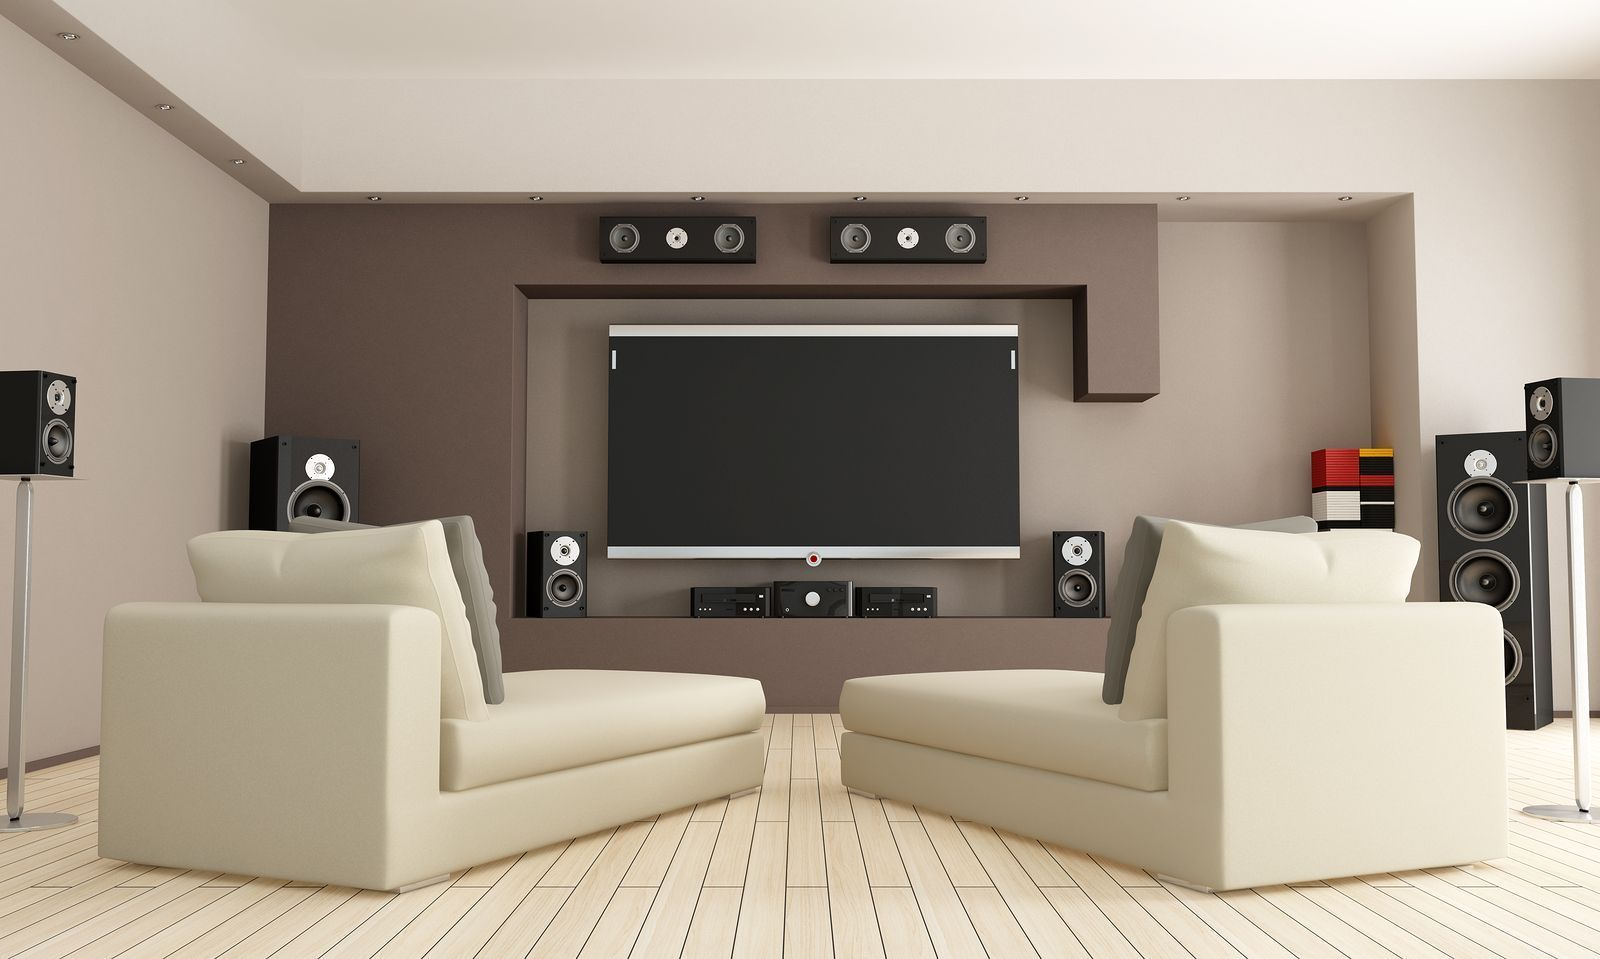 15 Awesome Basement Home Theater Cinema Room Ideas